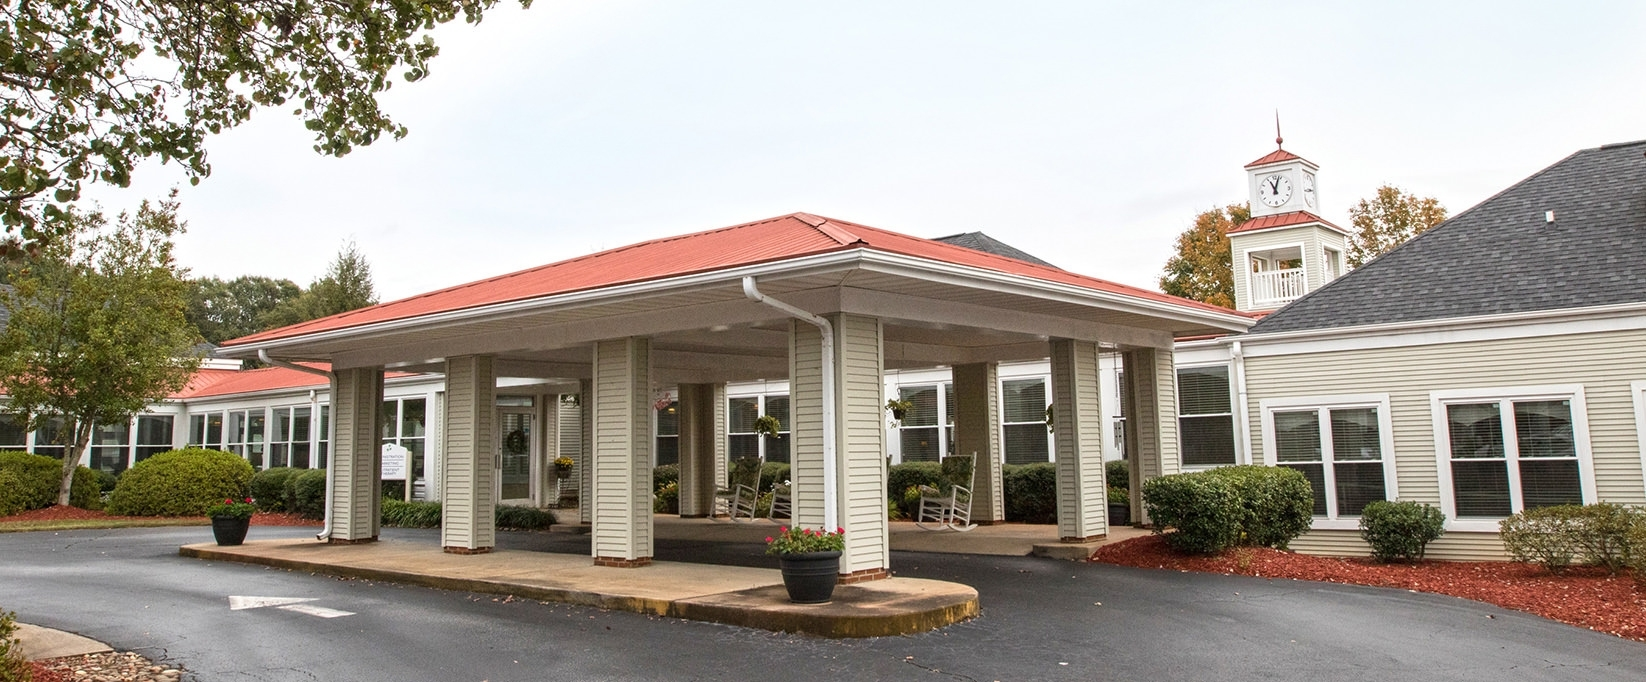 Independent And Assisted Living Anderson, Sc | Brookdale Anderson intended for Garden House Retirement Community Anderson Sc